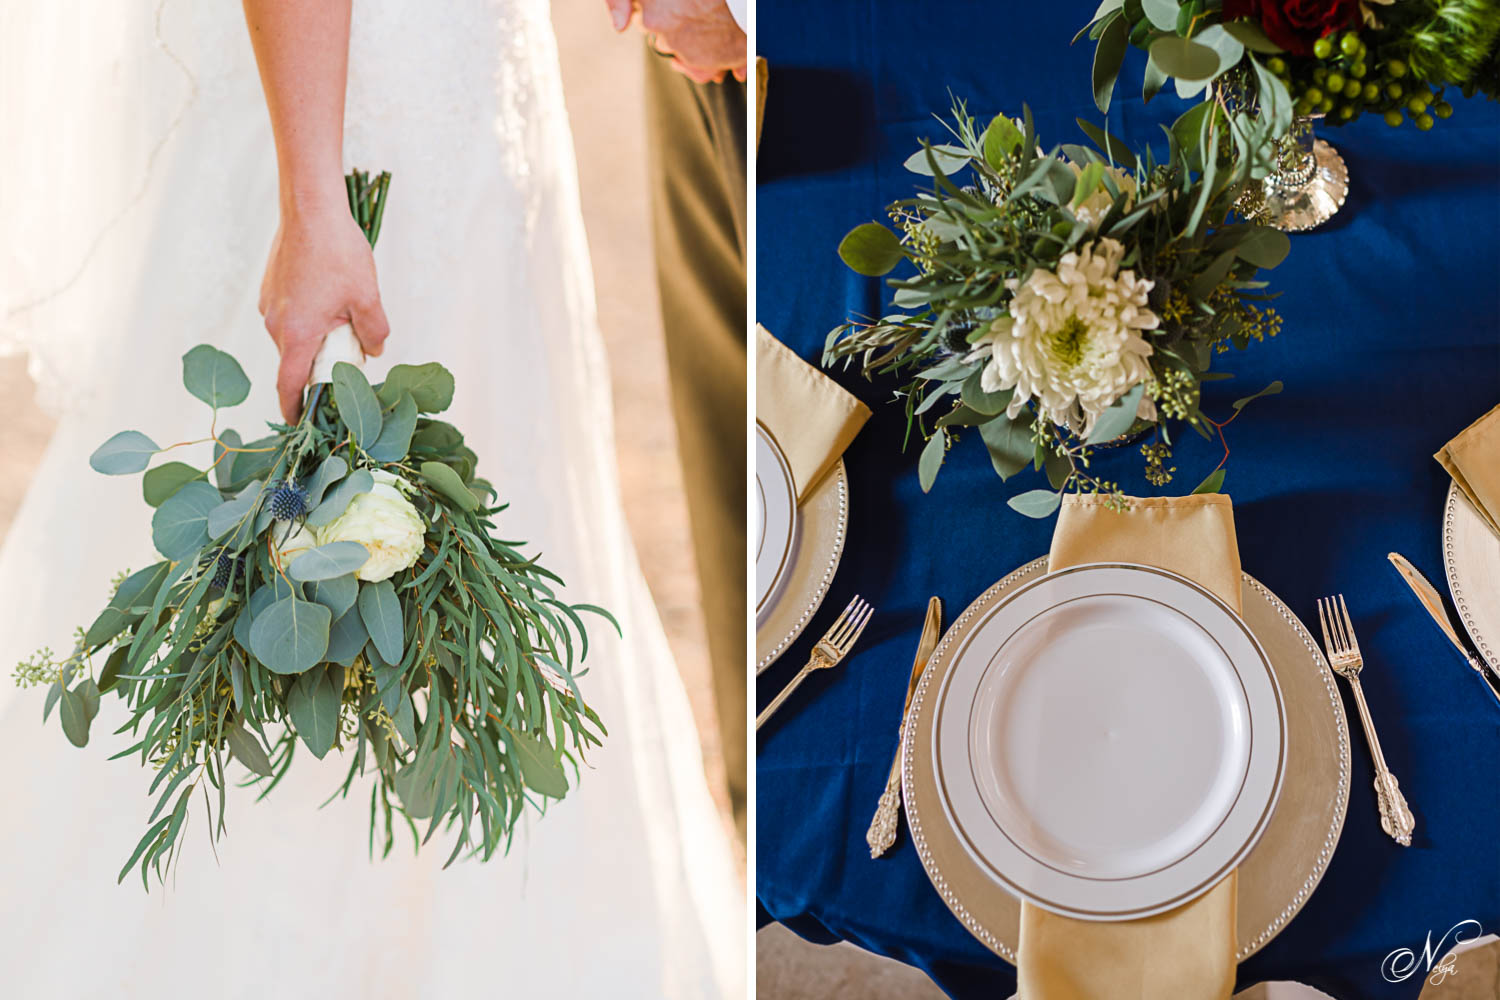 bride hand holding greenery bridal bouquet. And navy and gold table setting